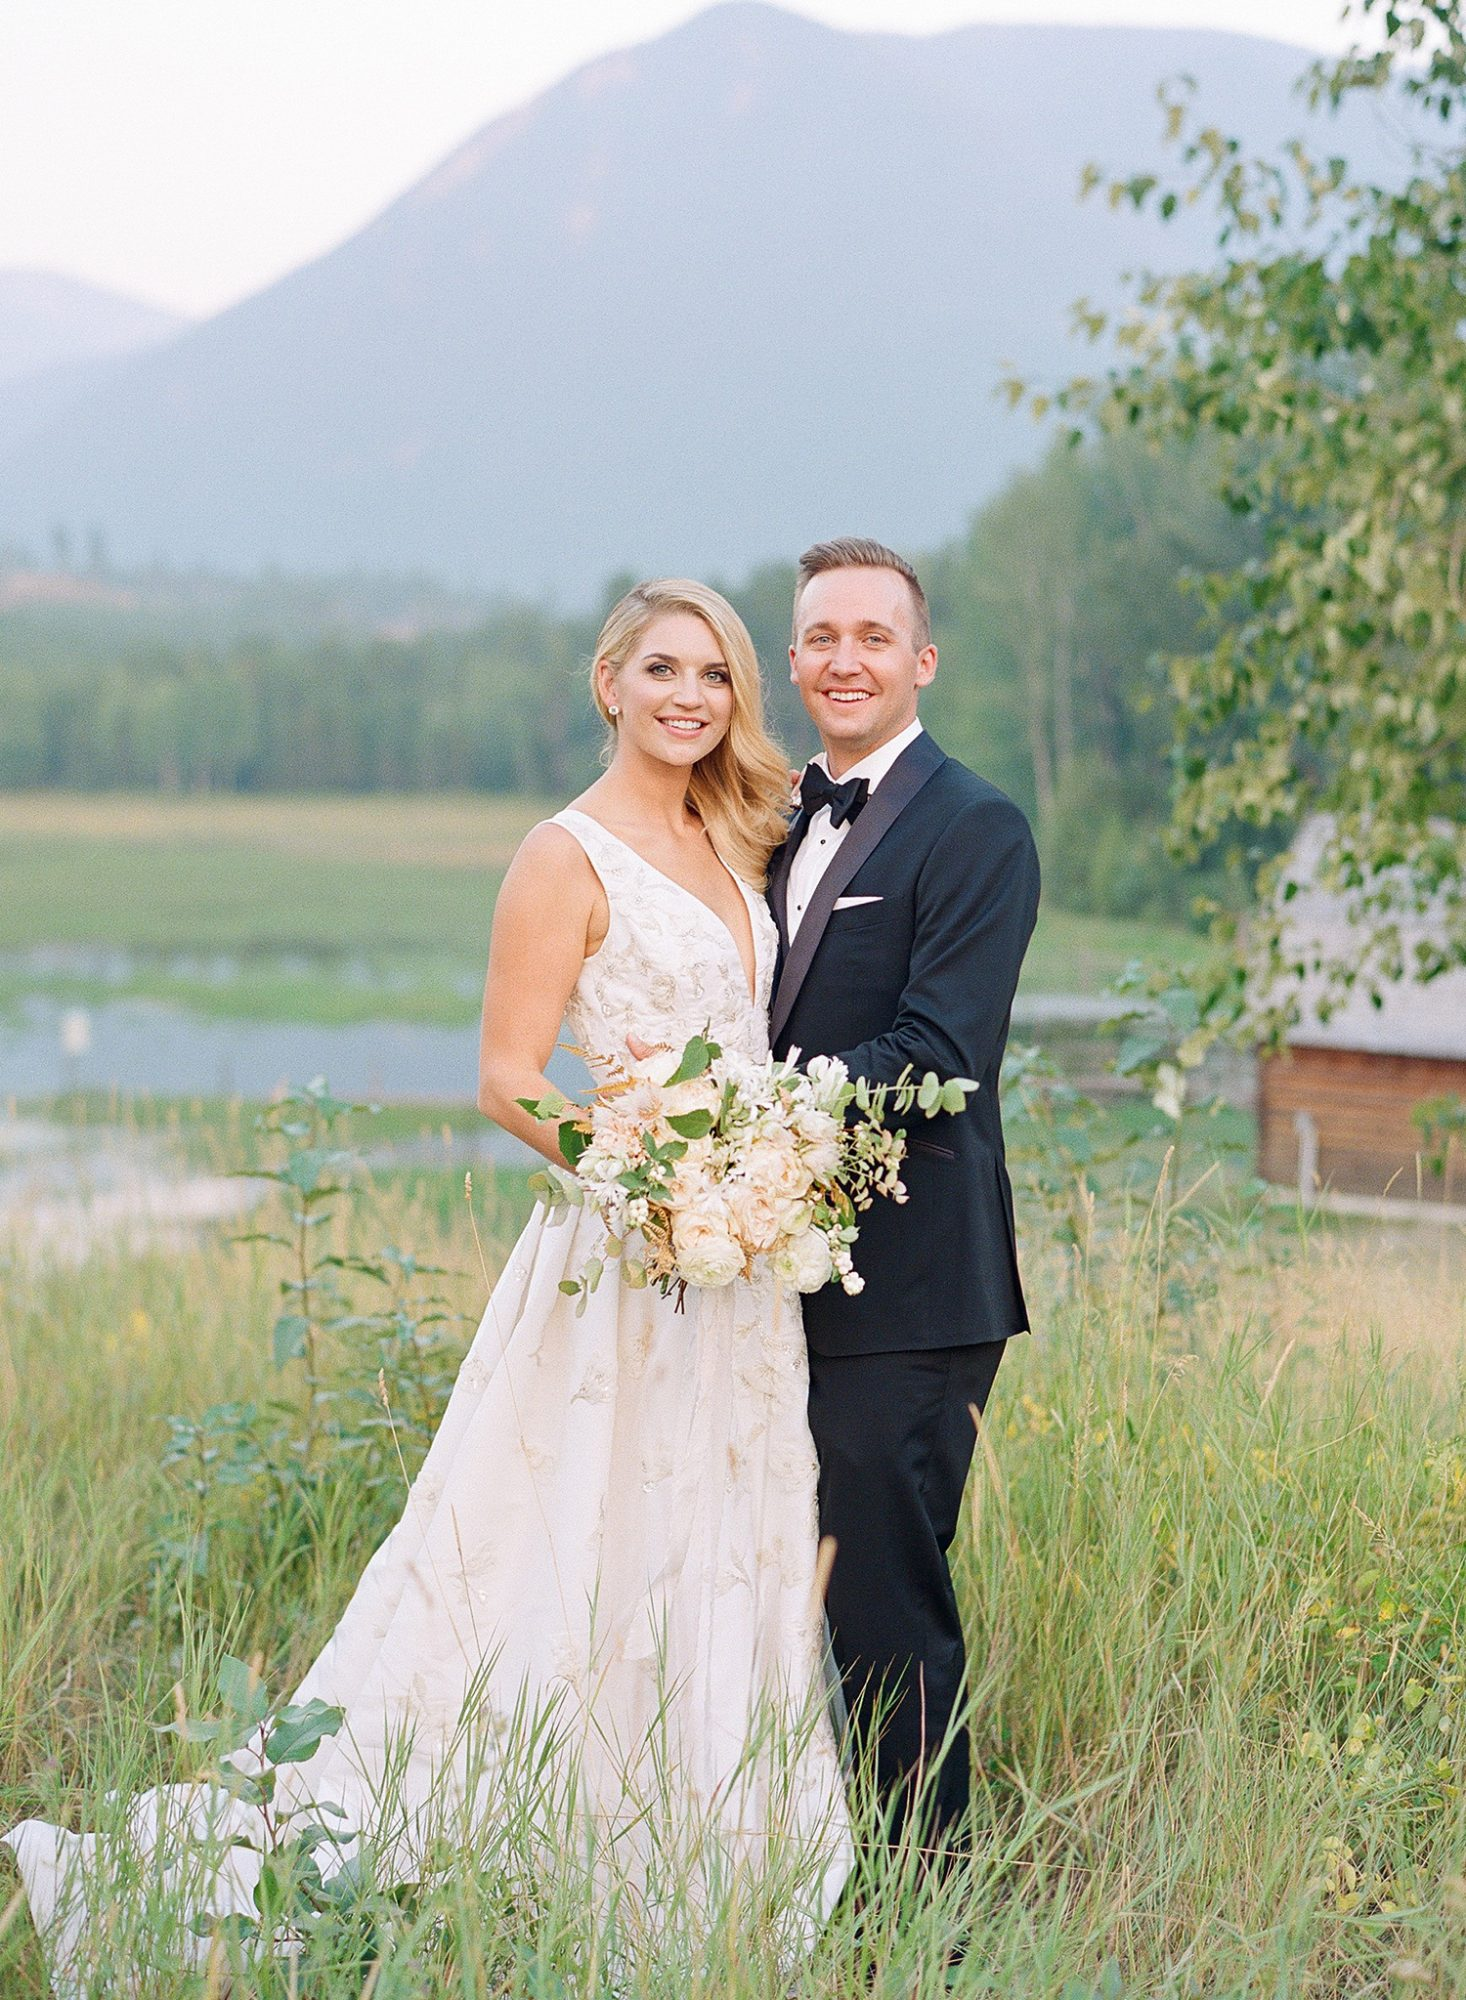 kaitlin jeremy wedding couple with mountains